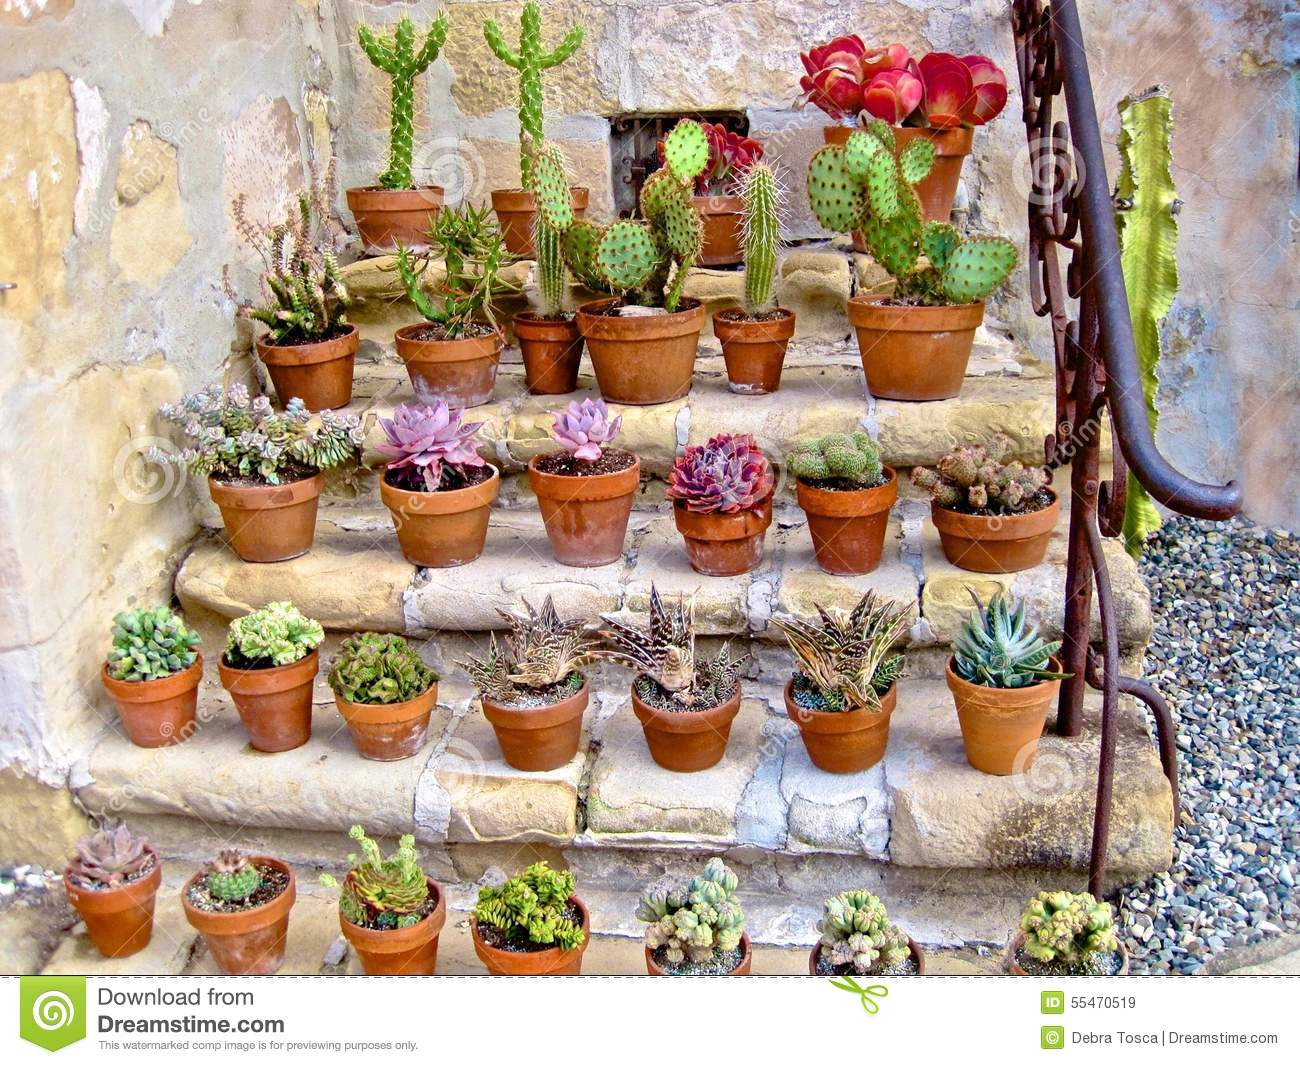 plante le cactus mis en pot de succulents photo stock image 55470519. Black Bedroom Furniture Sets. Home Design Ideas